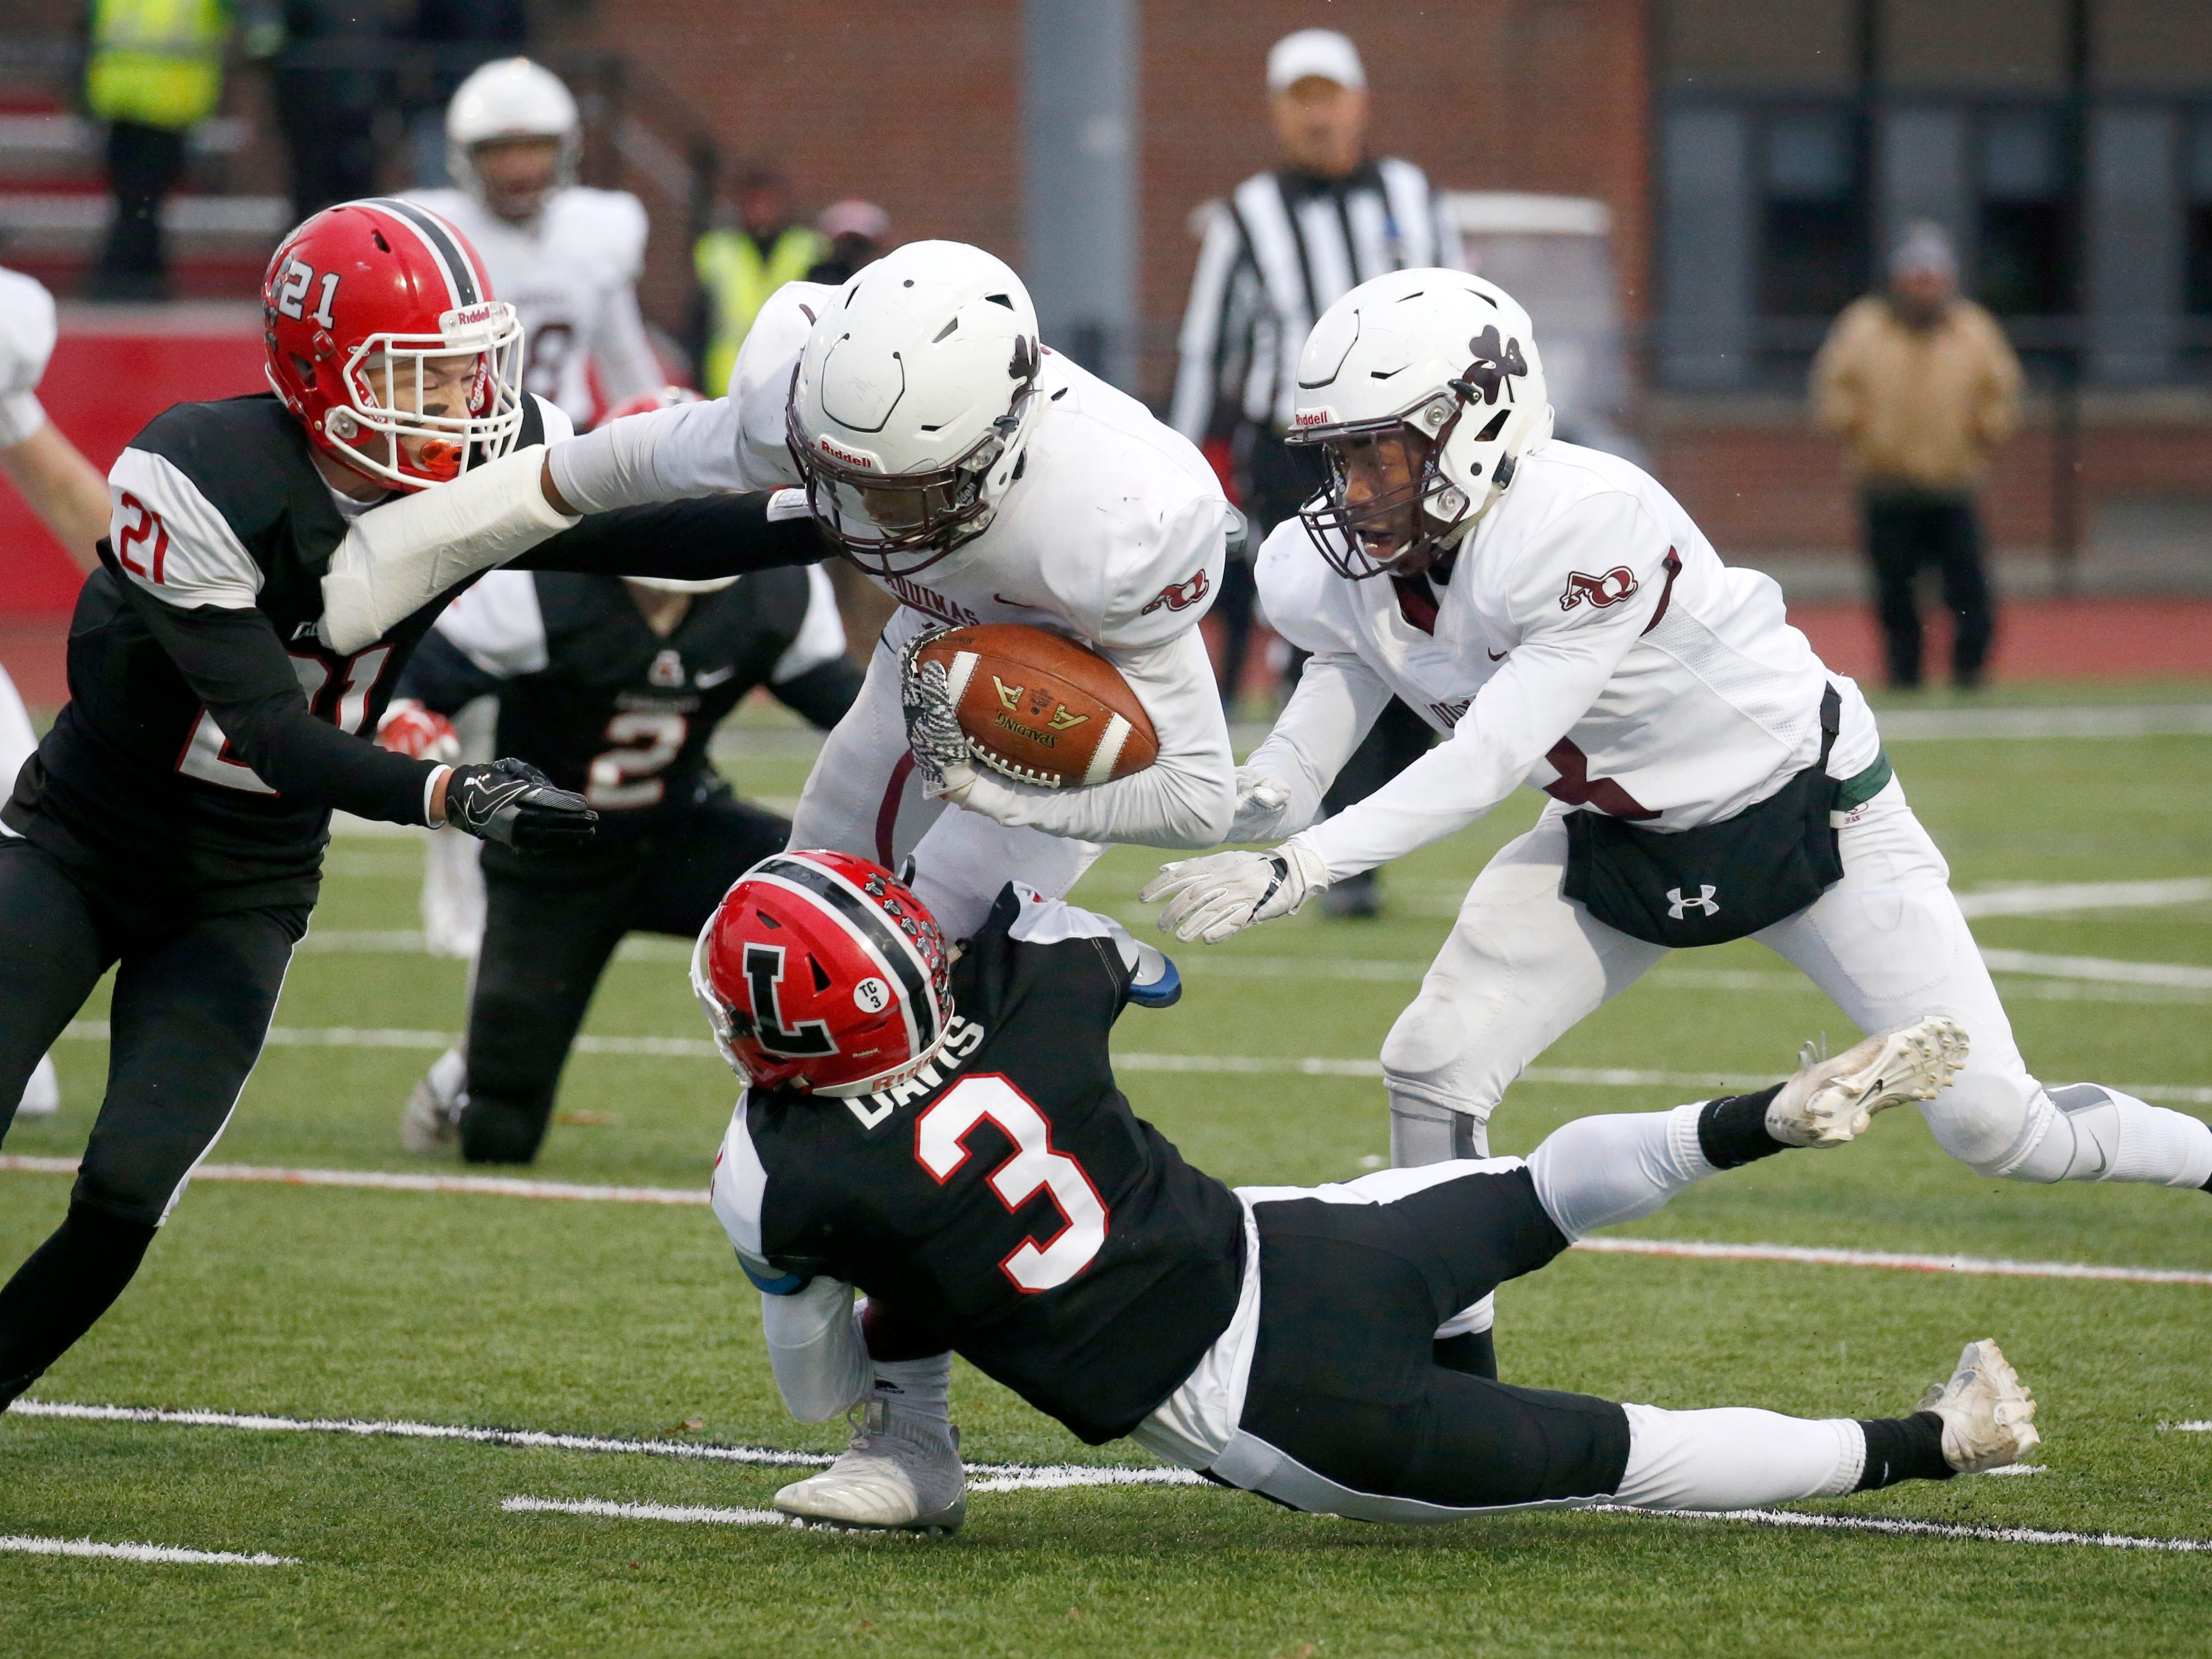 Aquinas' Caron Robinson is tackled by Lancaster's Shawn Davis in the first quarter at Clarence High School on Nov. 10, 2018.